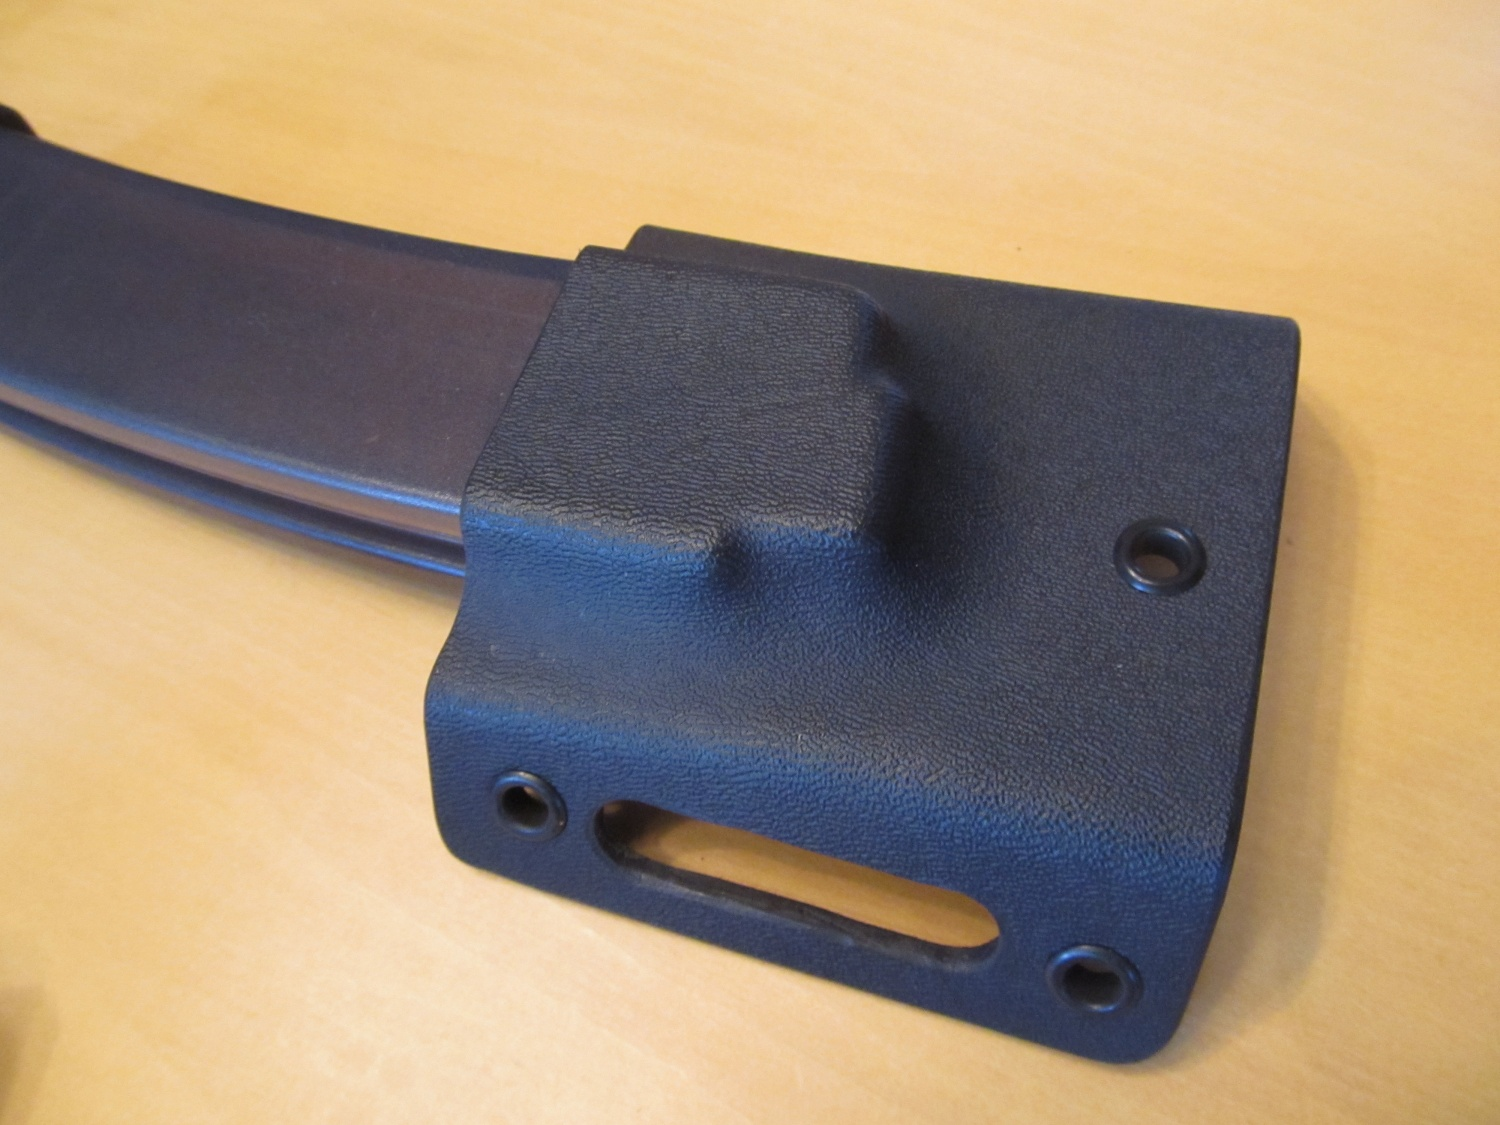 Kydex magazine holder that the firm is working on for Scorpion magazines.